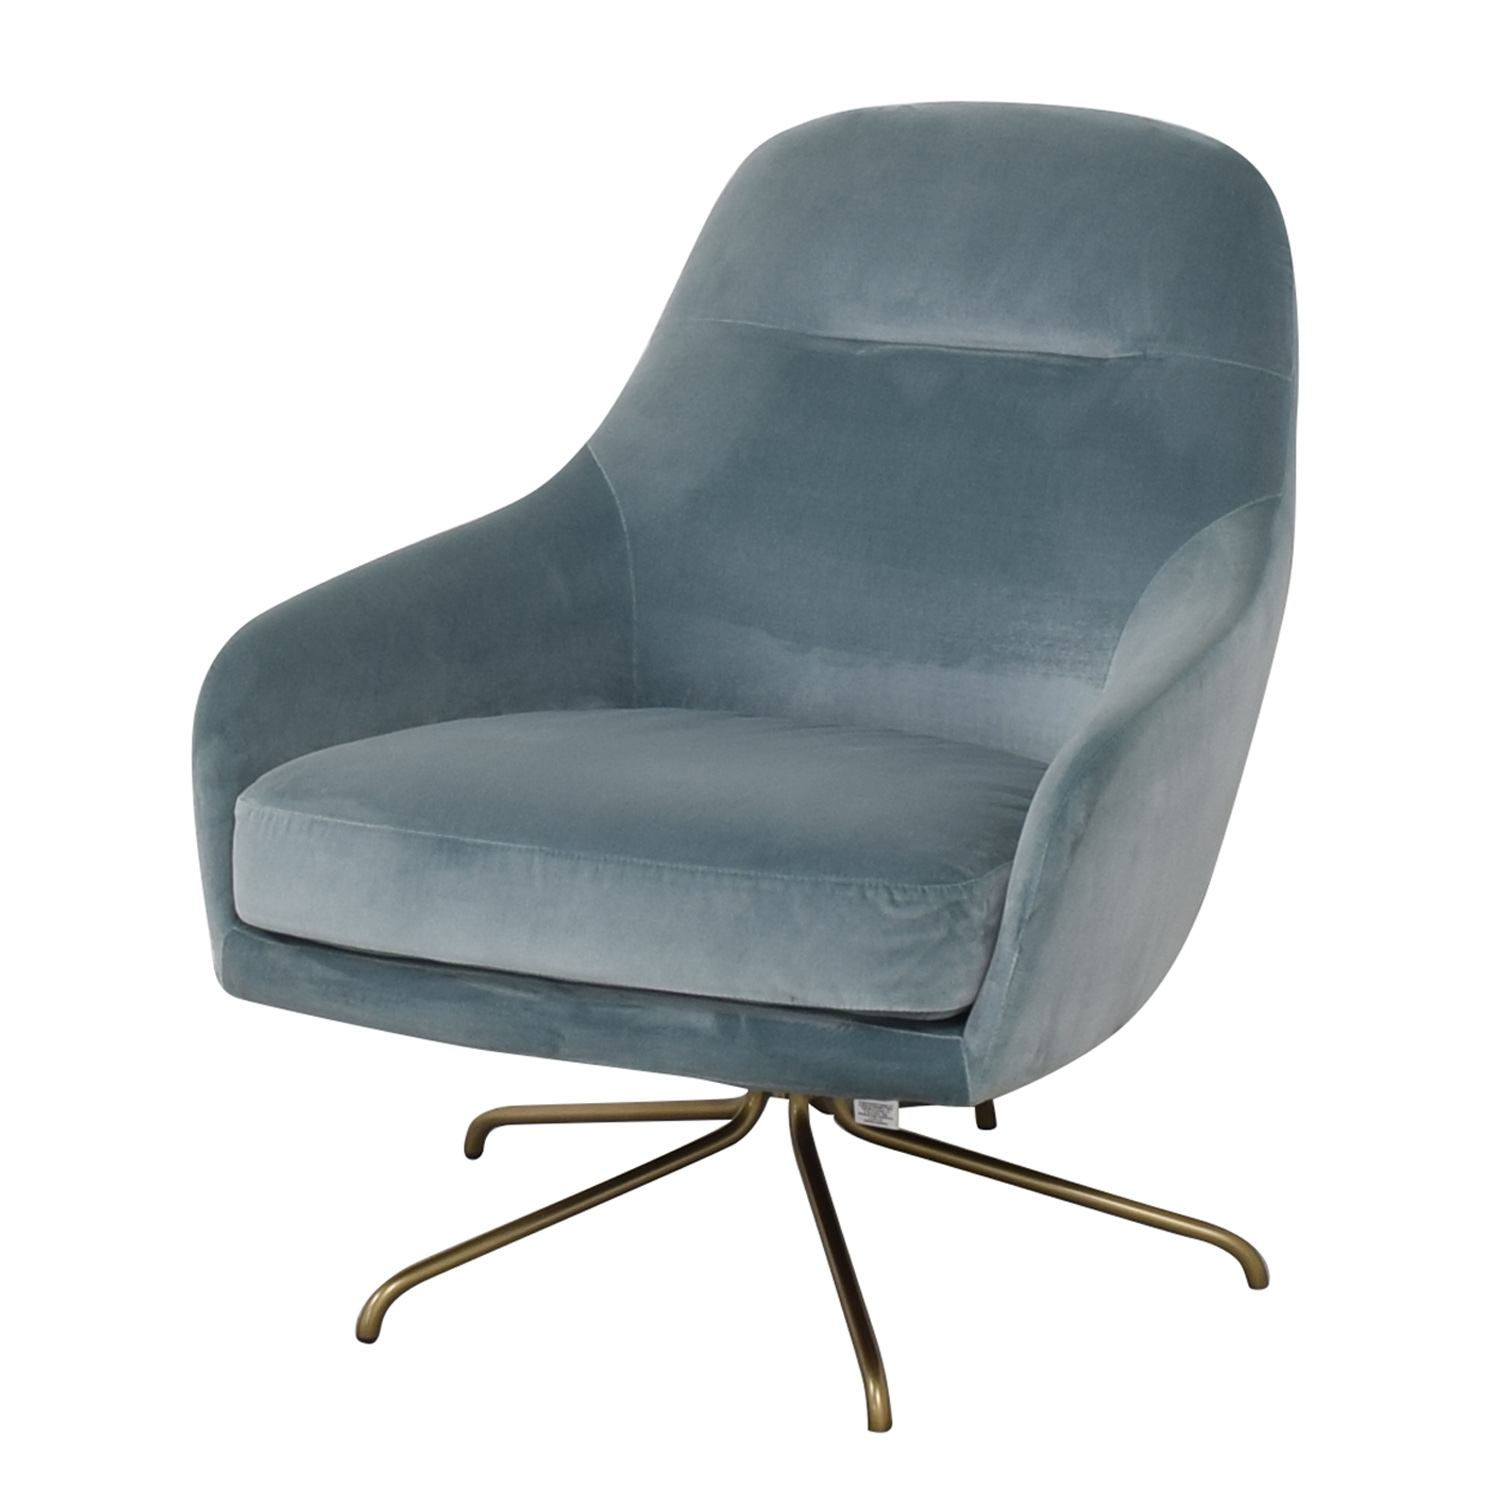 West Elm West Elm Valentina Swivel Chair on sale